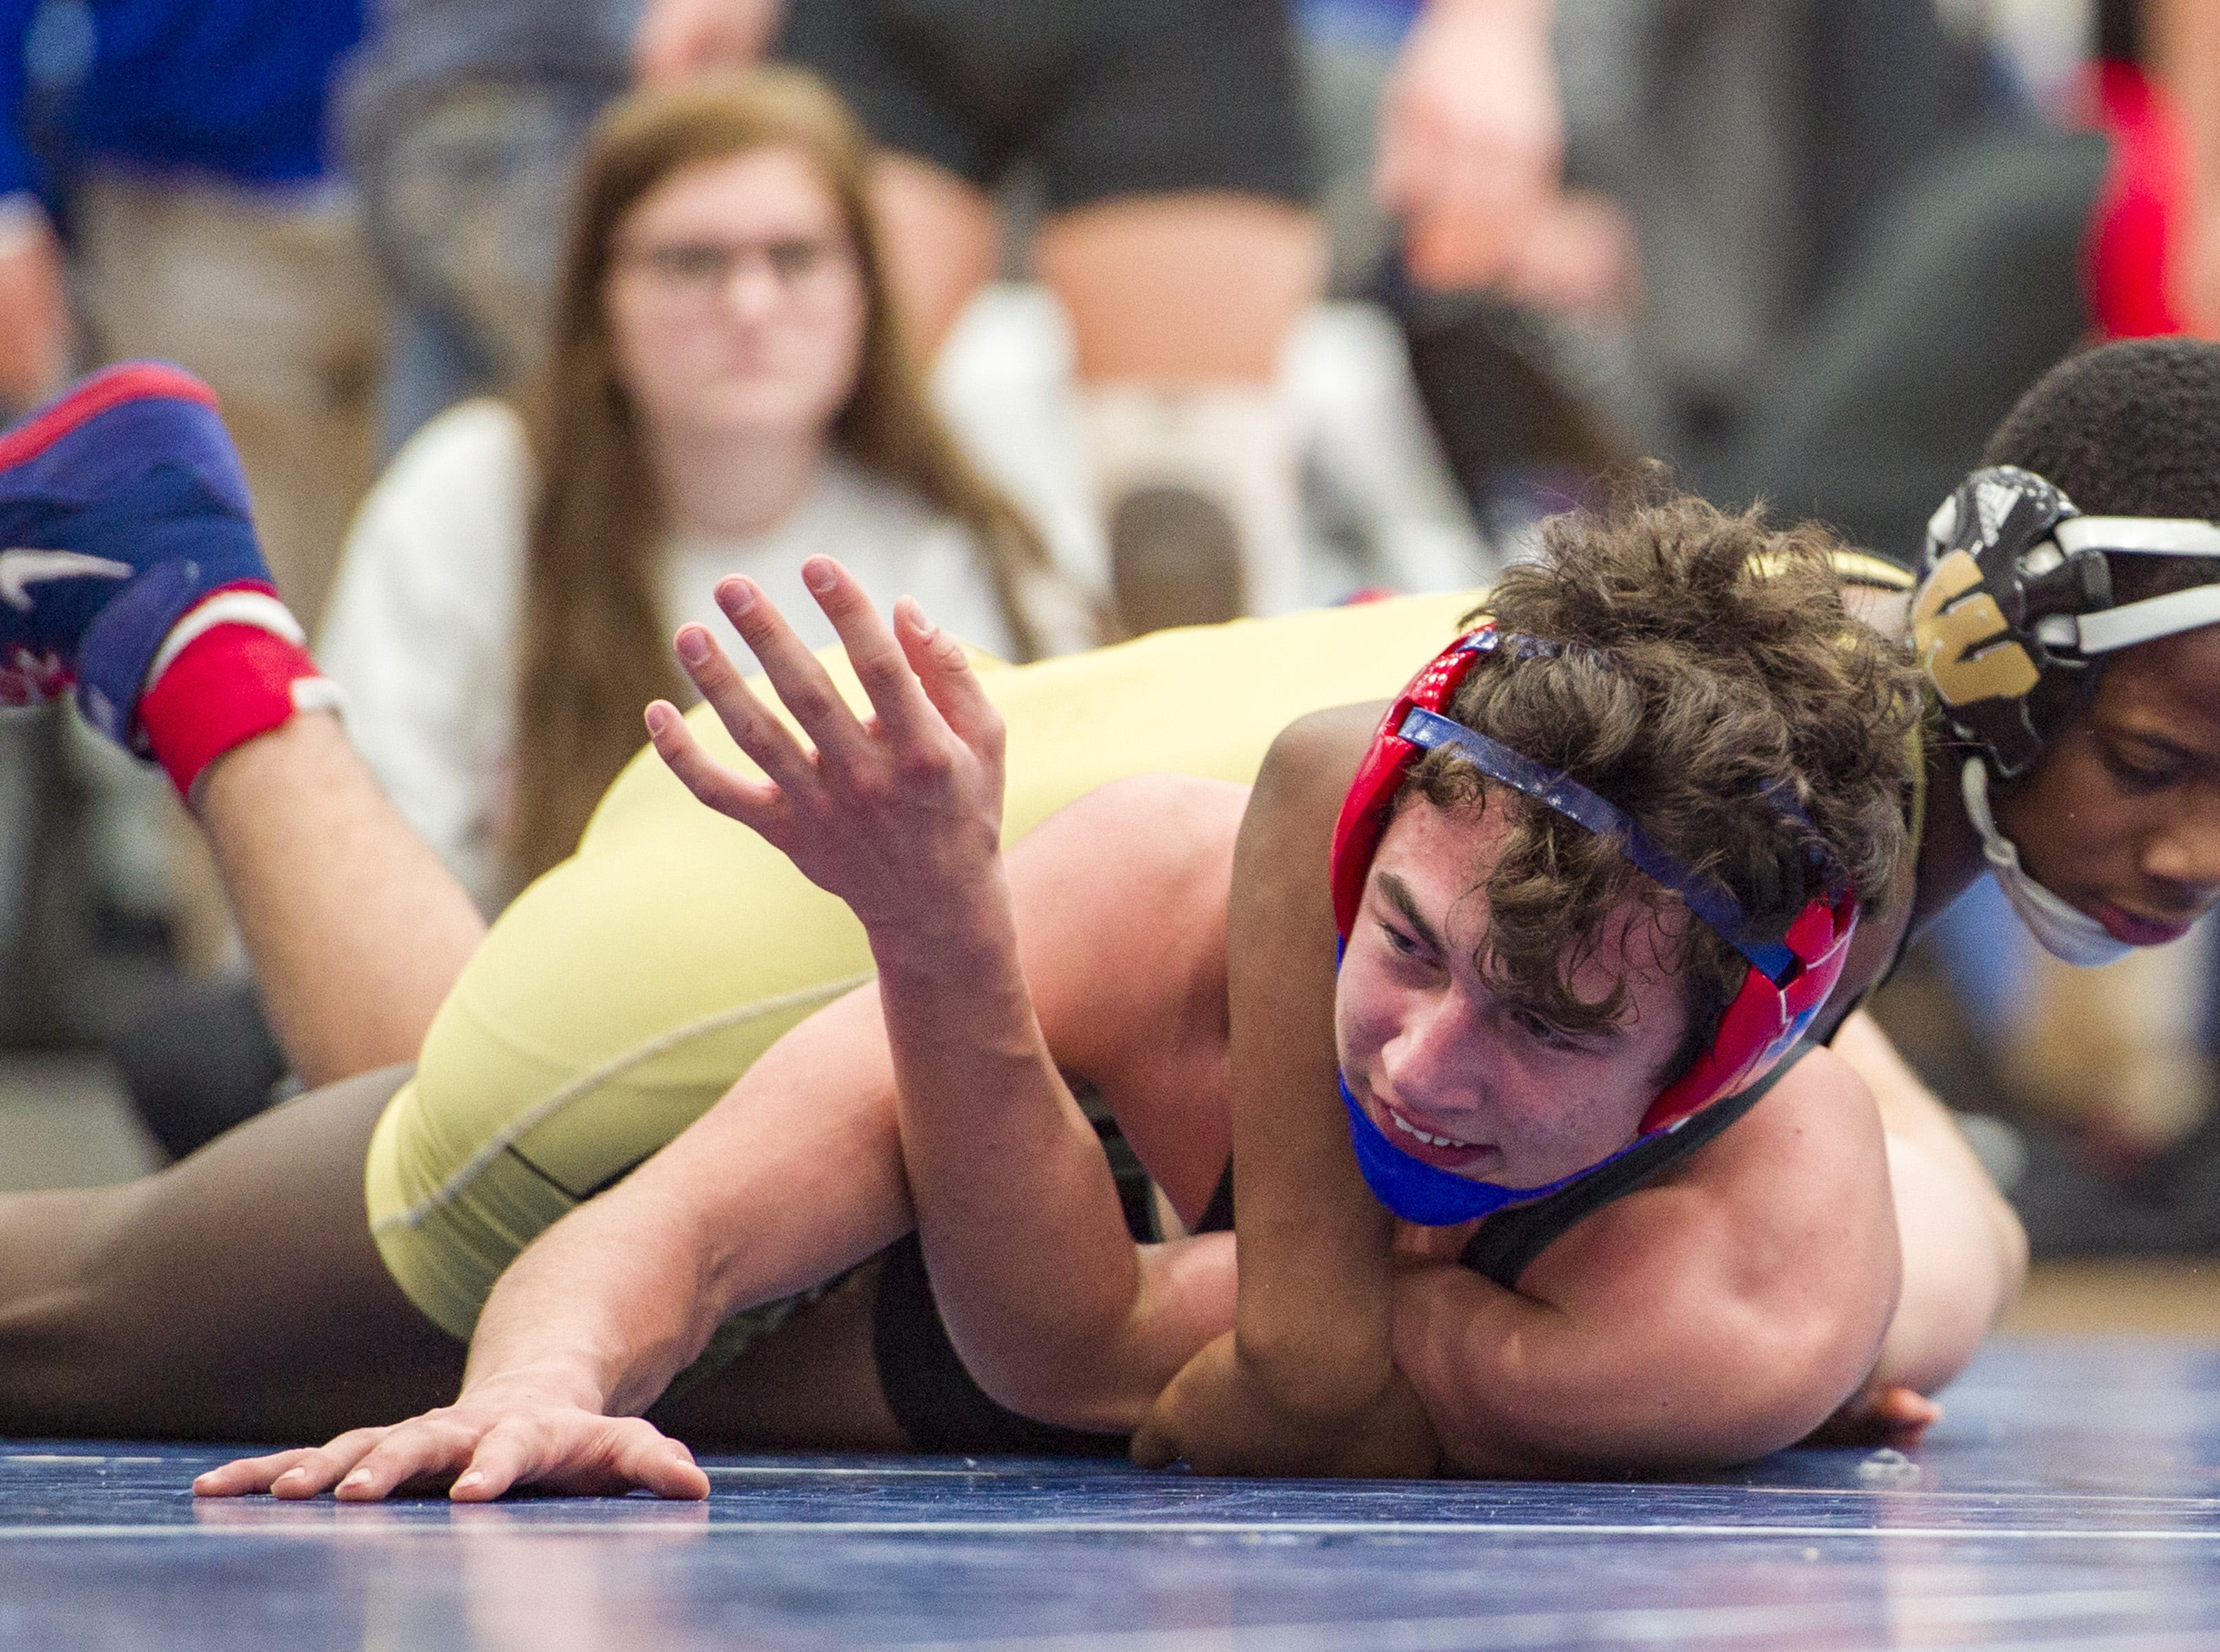 Warren Central High School wrestler Jevian Ross, top, during his match with Roncalli High School's Sam Slivka in the 126-pound weight class. Franklin Central High School hosted the Marion County wrestling championships, Saturday, Dec. 15, 2018.